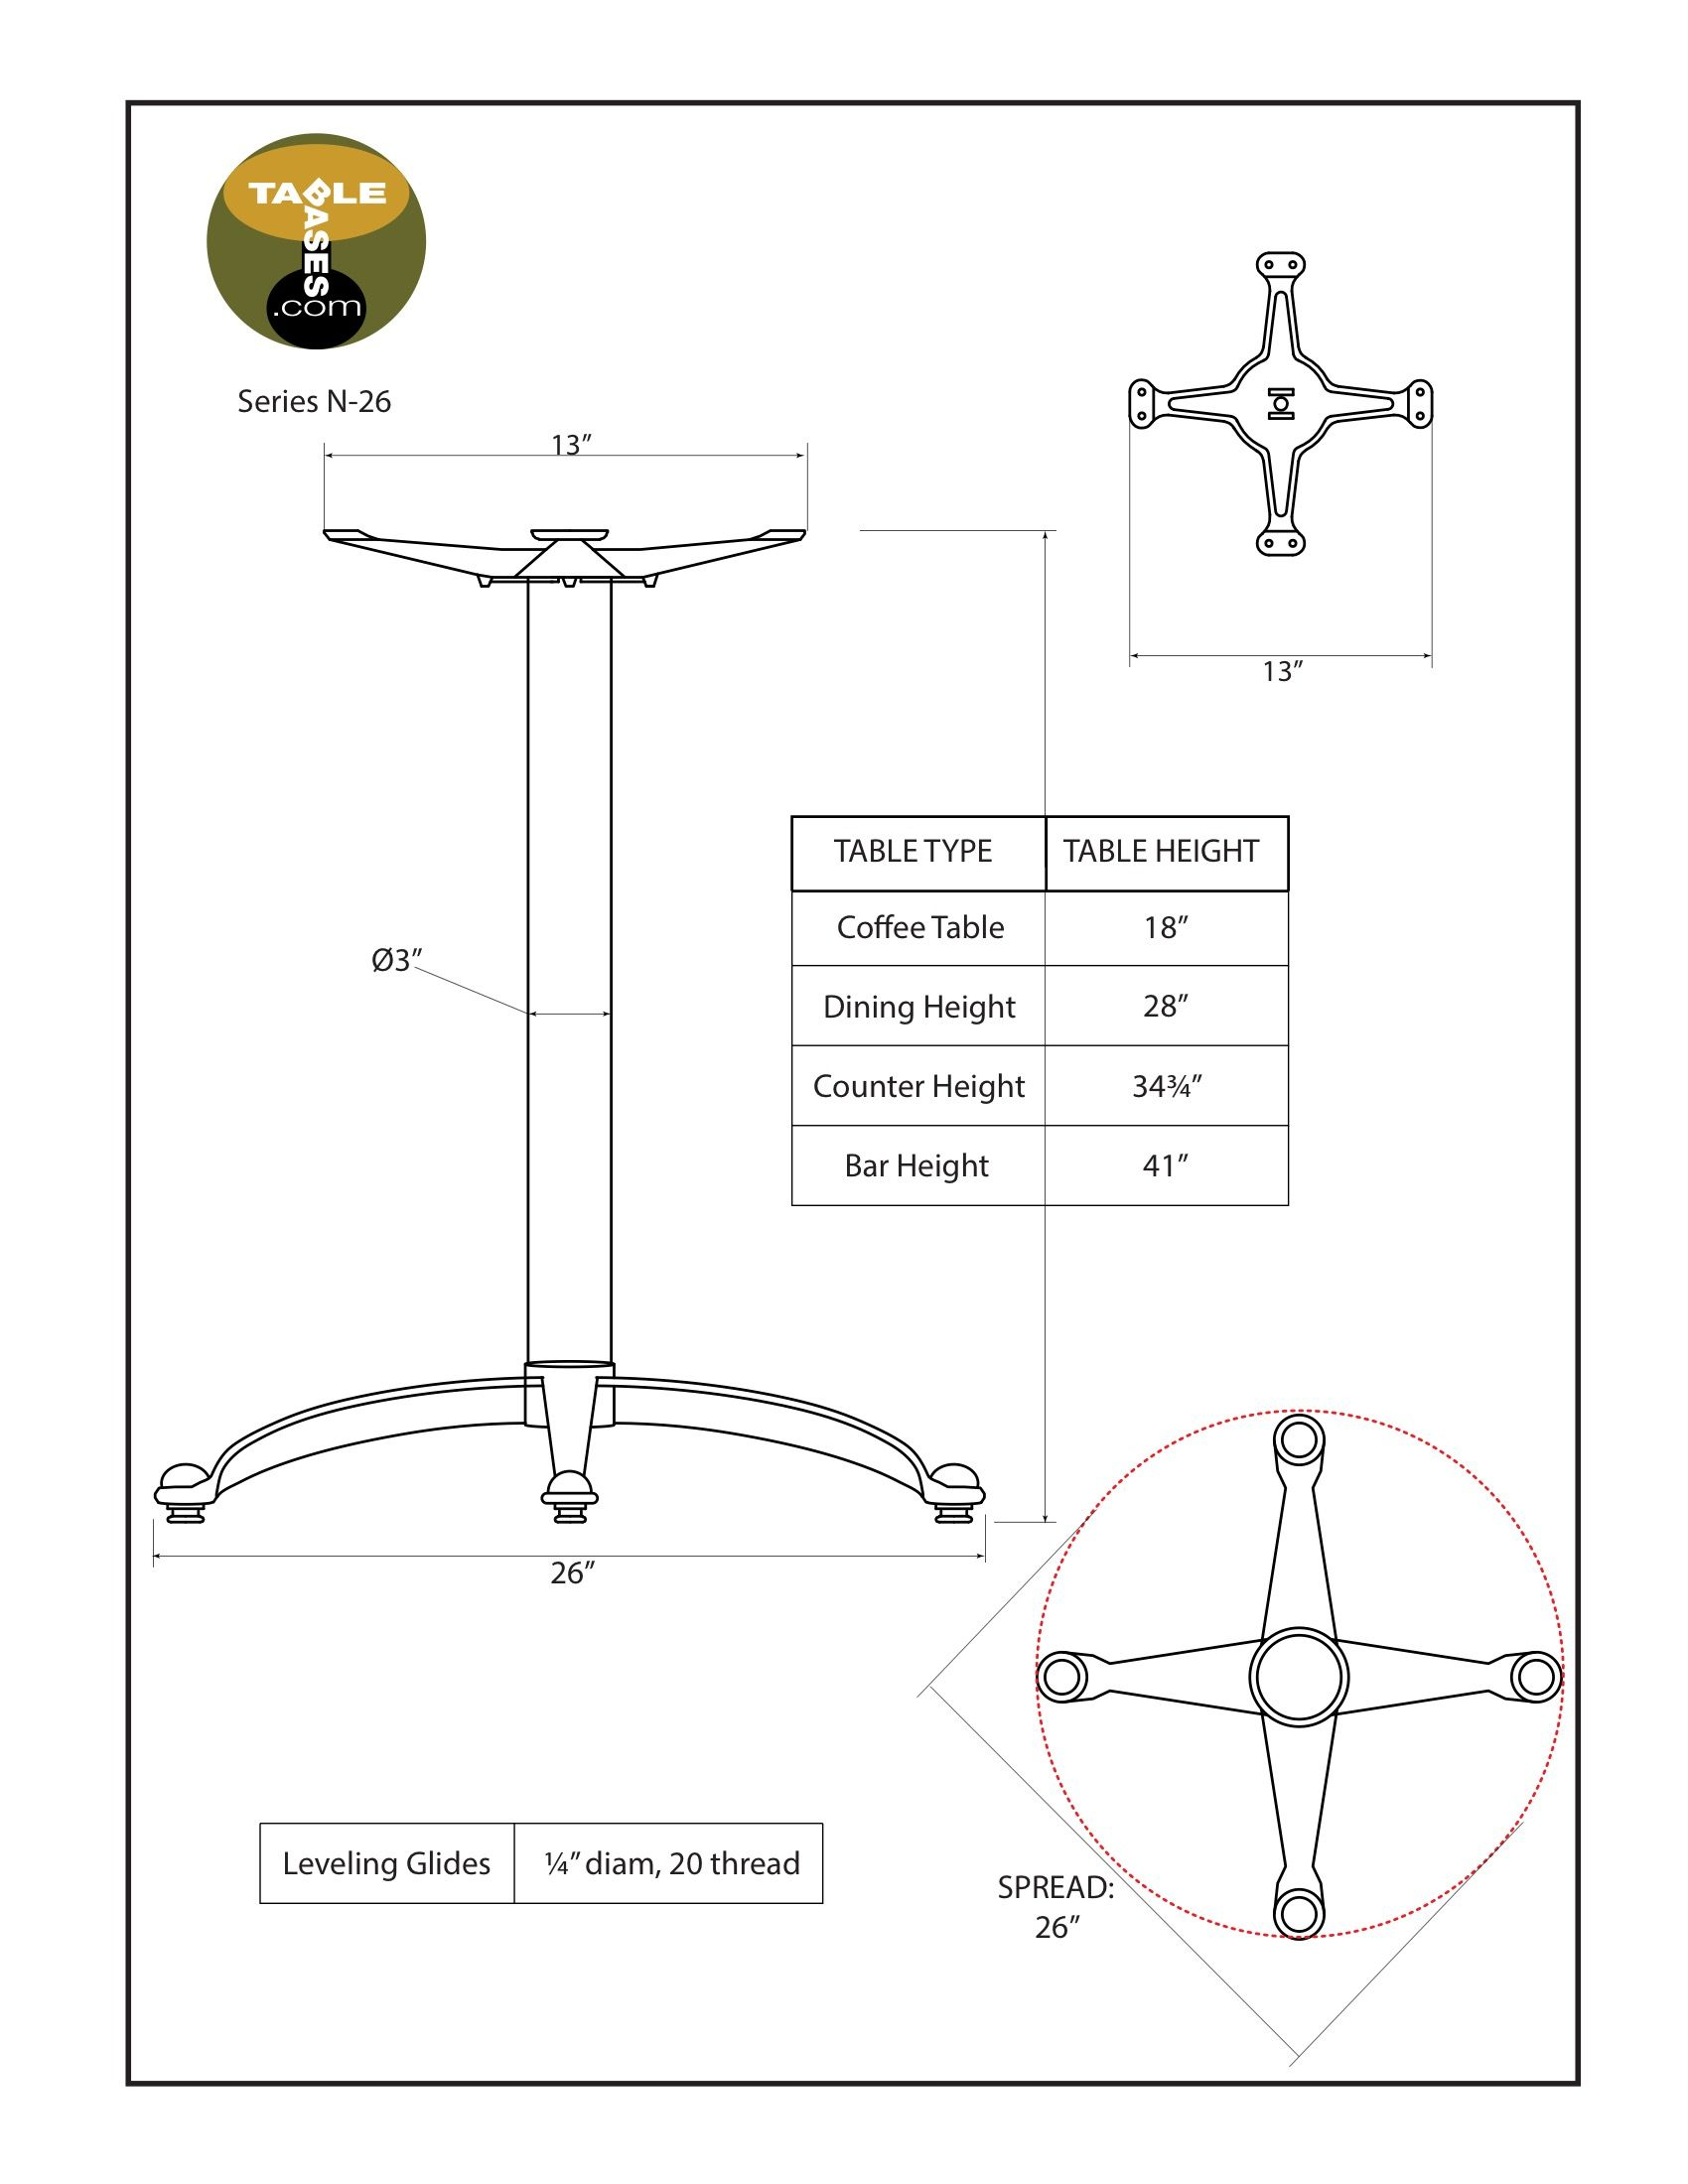 Rocksteady Stainless Steel Table Base